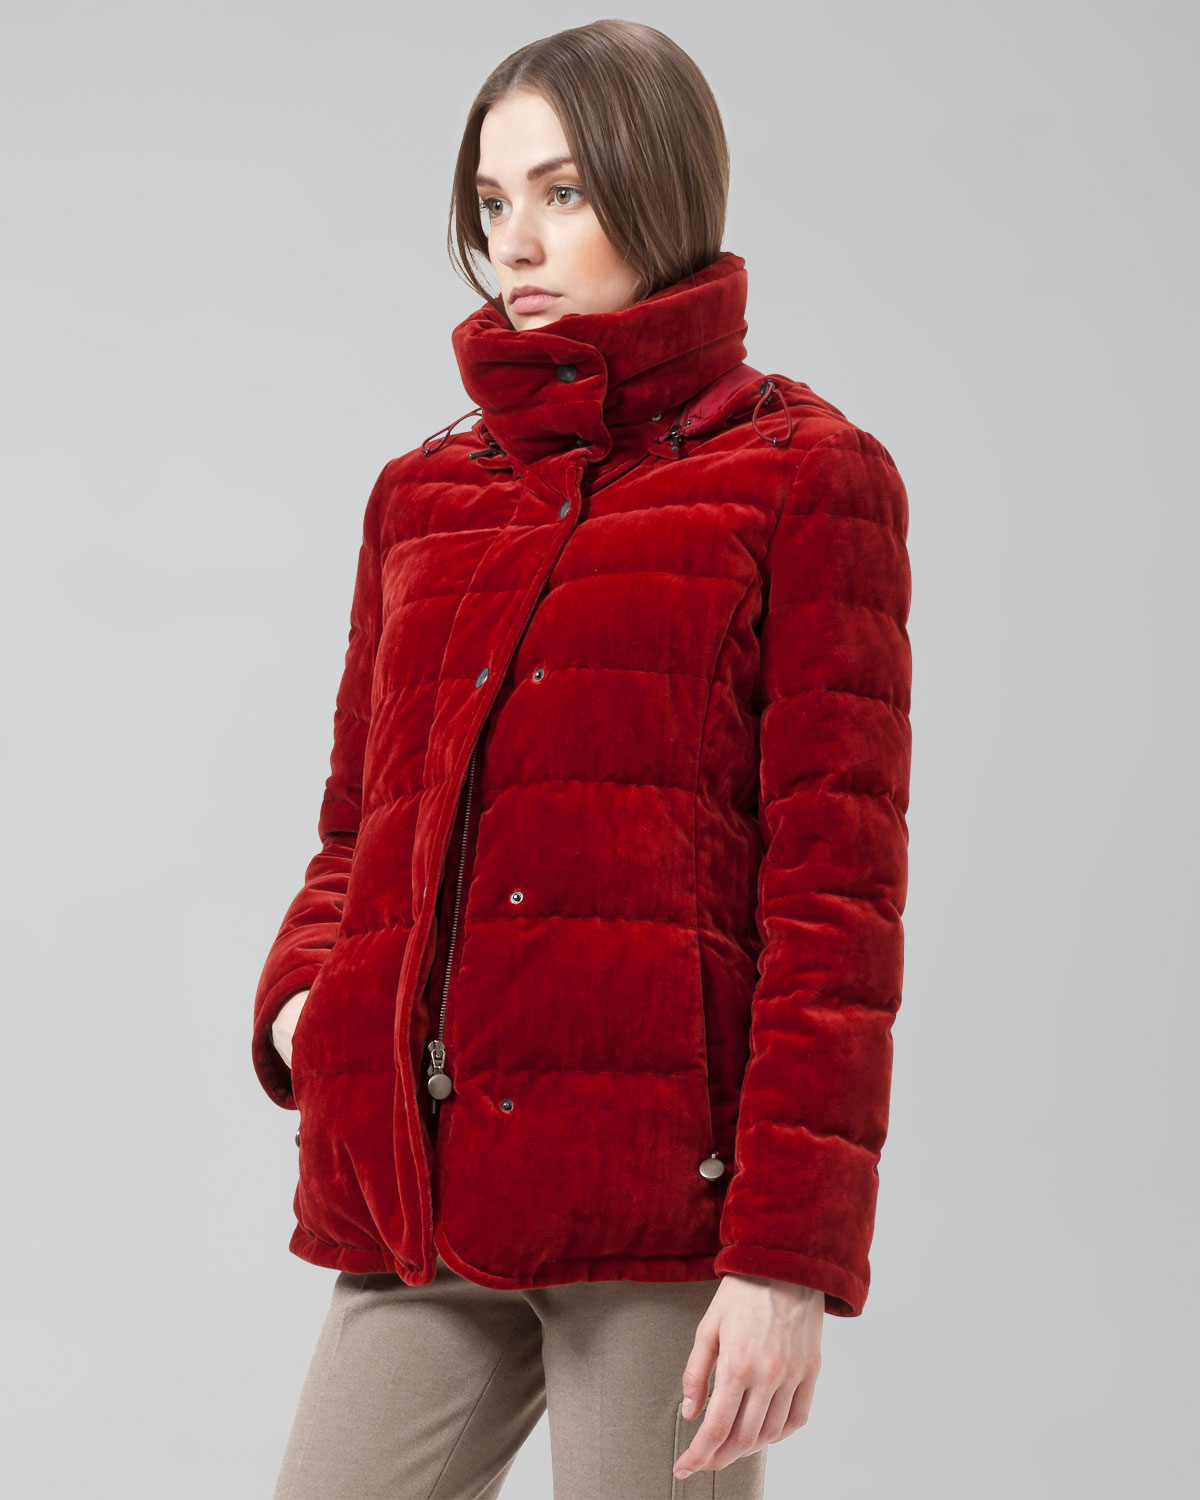 Akris Punto Velvet Puffer Jacket In Red Lyst